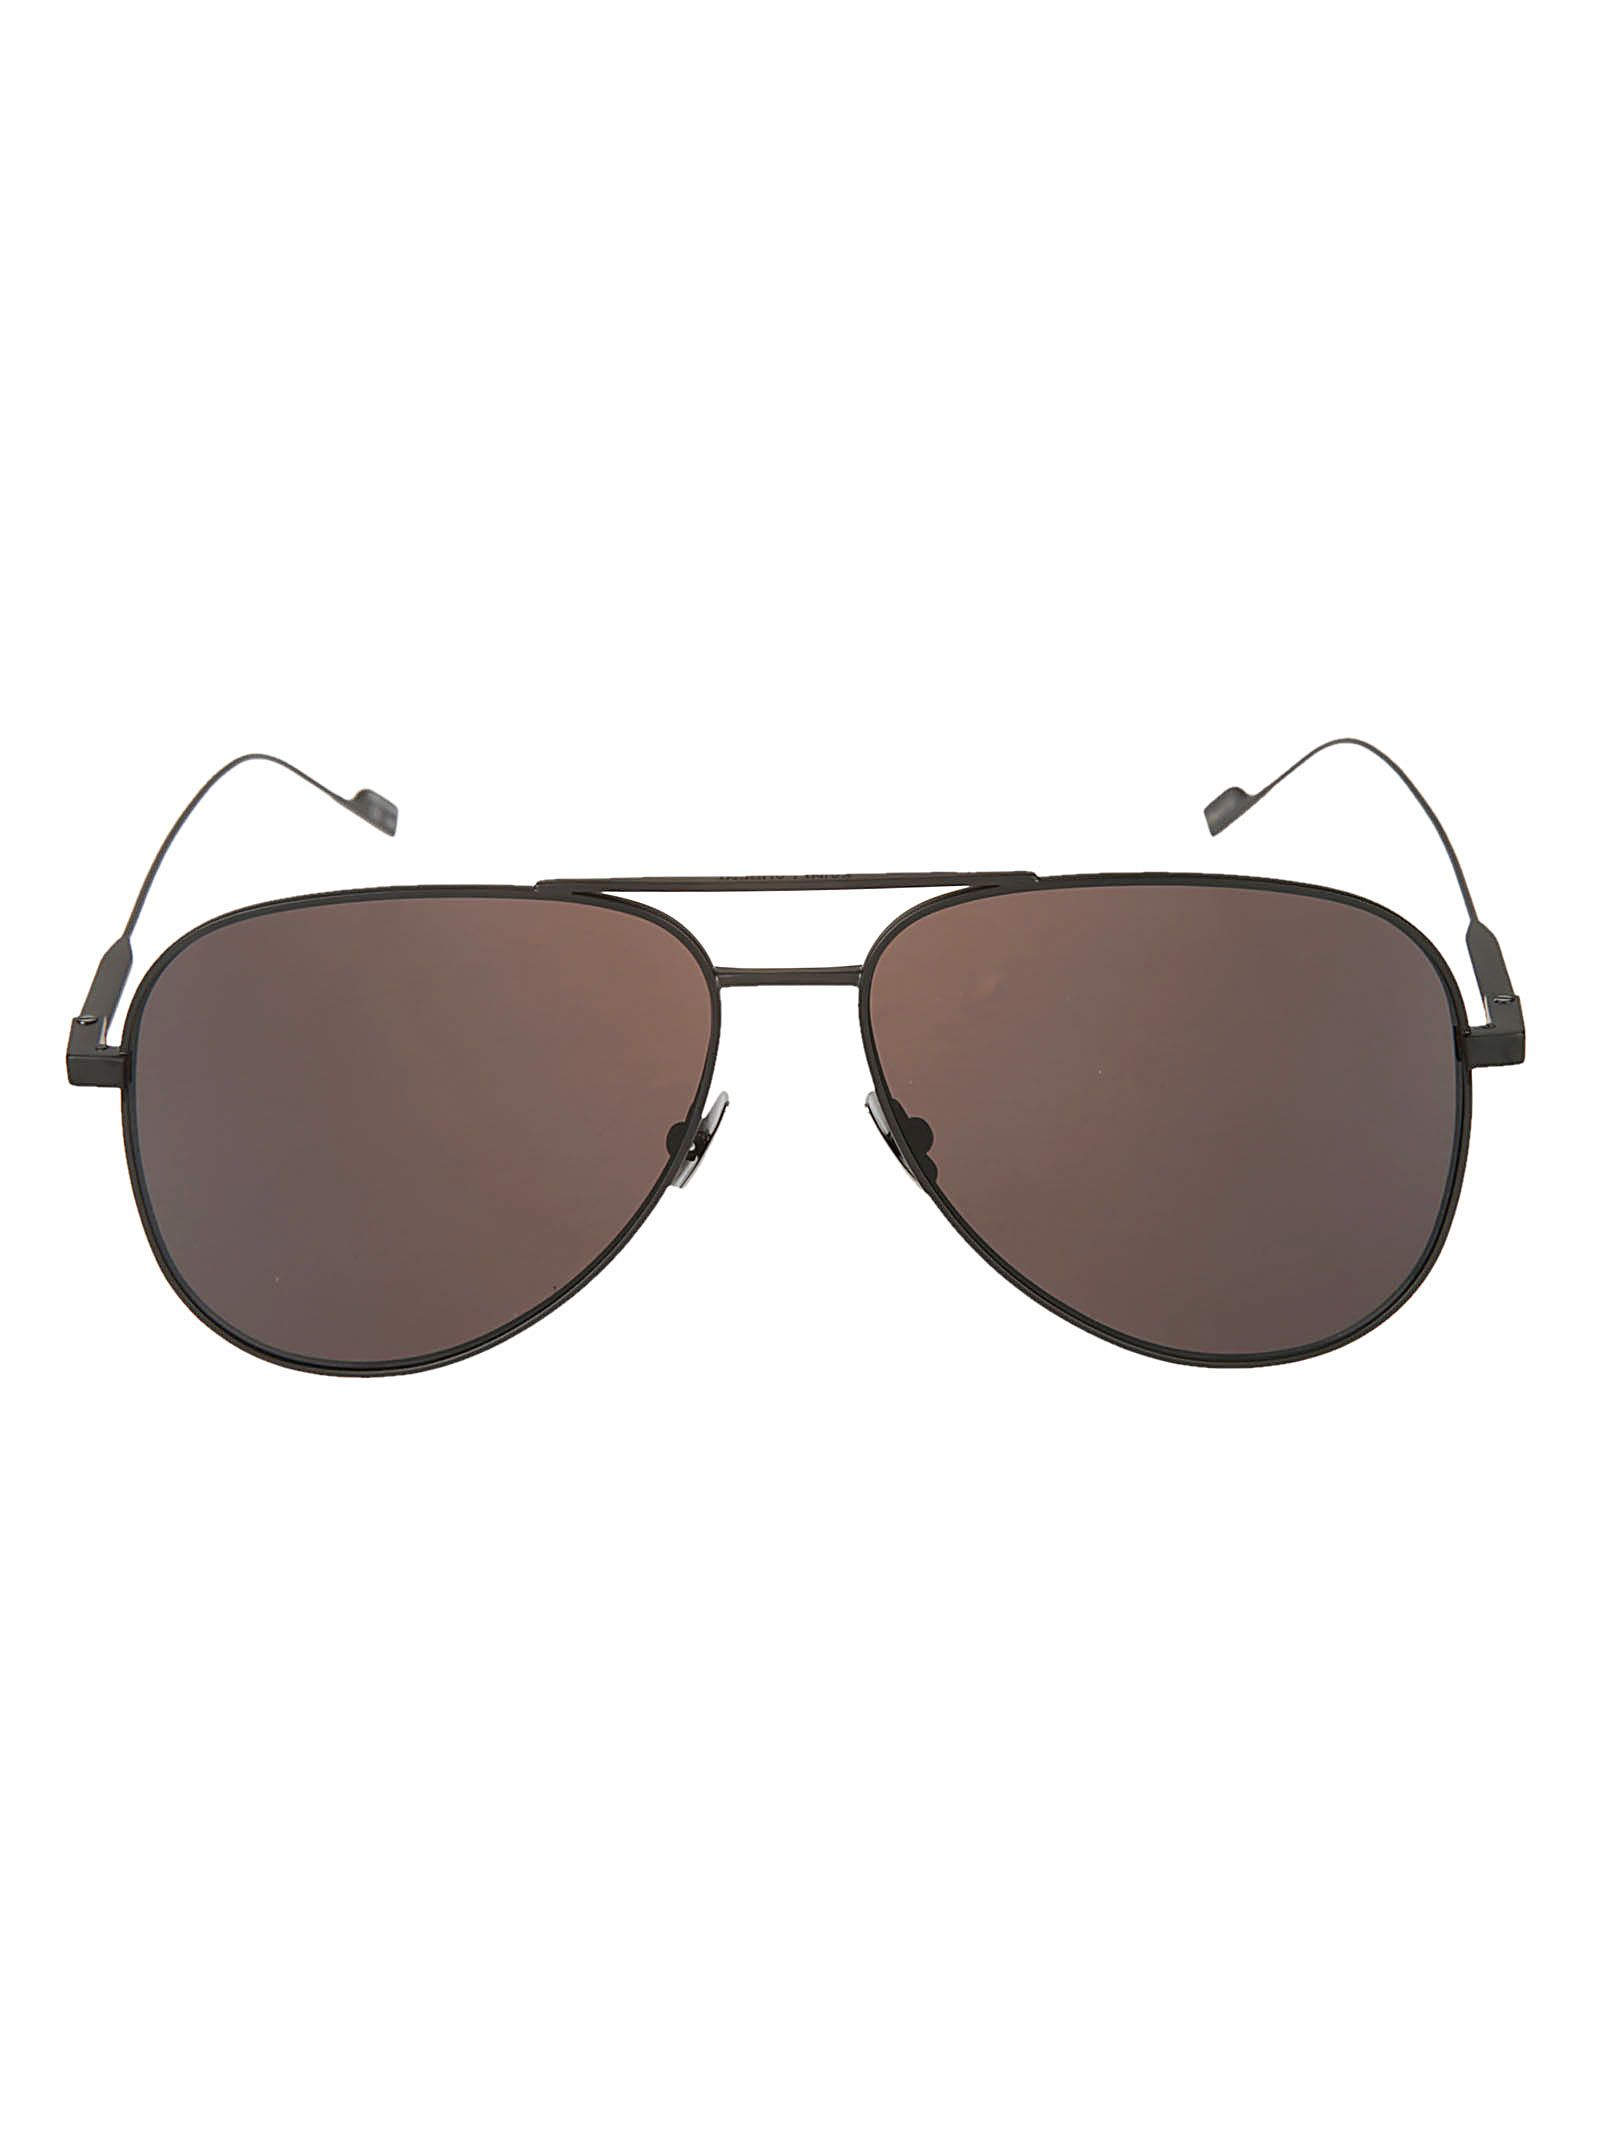 11b62a74d7 Aviator Sunglasses from Saint Laurent  Black-Grey Aviator Sunglasses with  tinted lenses